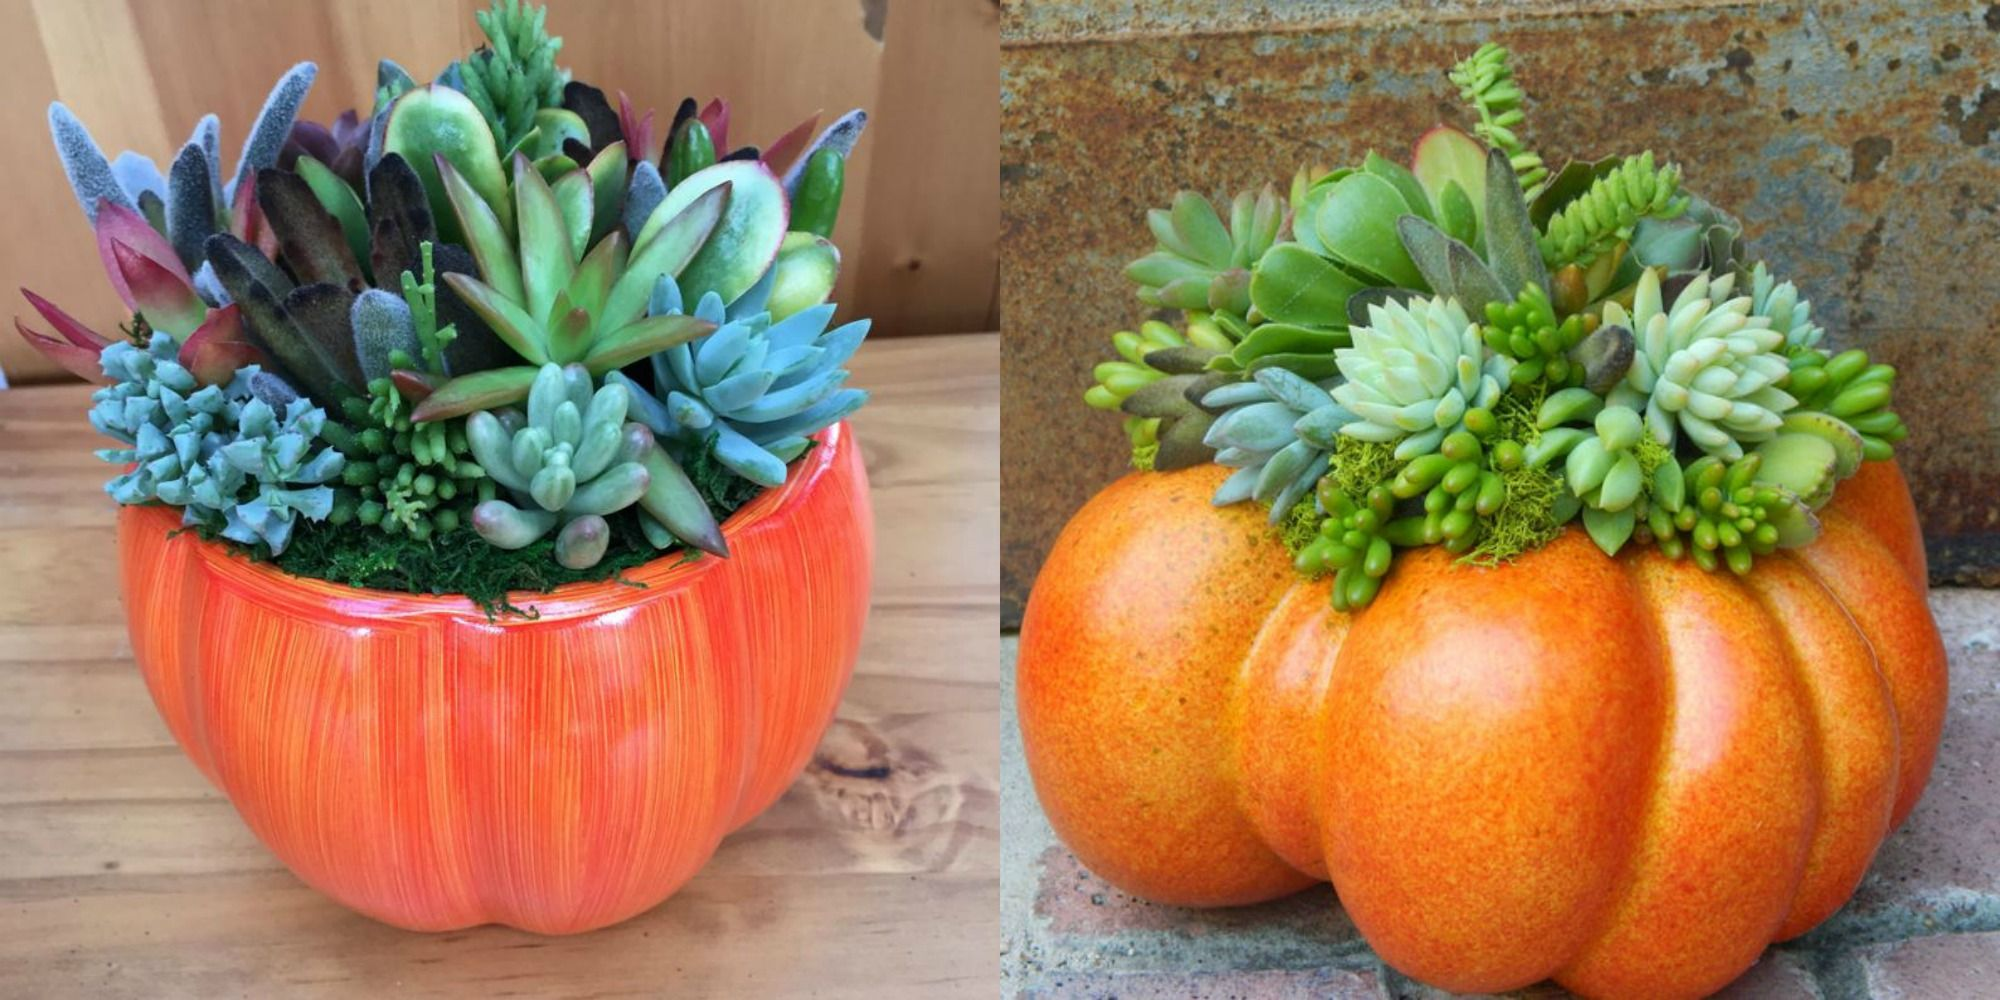 Etsy Is Selling The Cutest Succulent Pumpkin Centerpieces To Get Your Home Ready For Fall